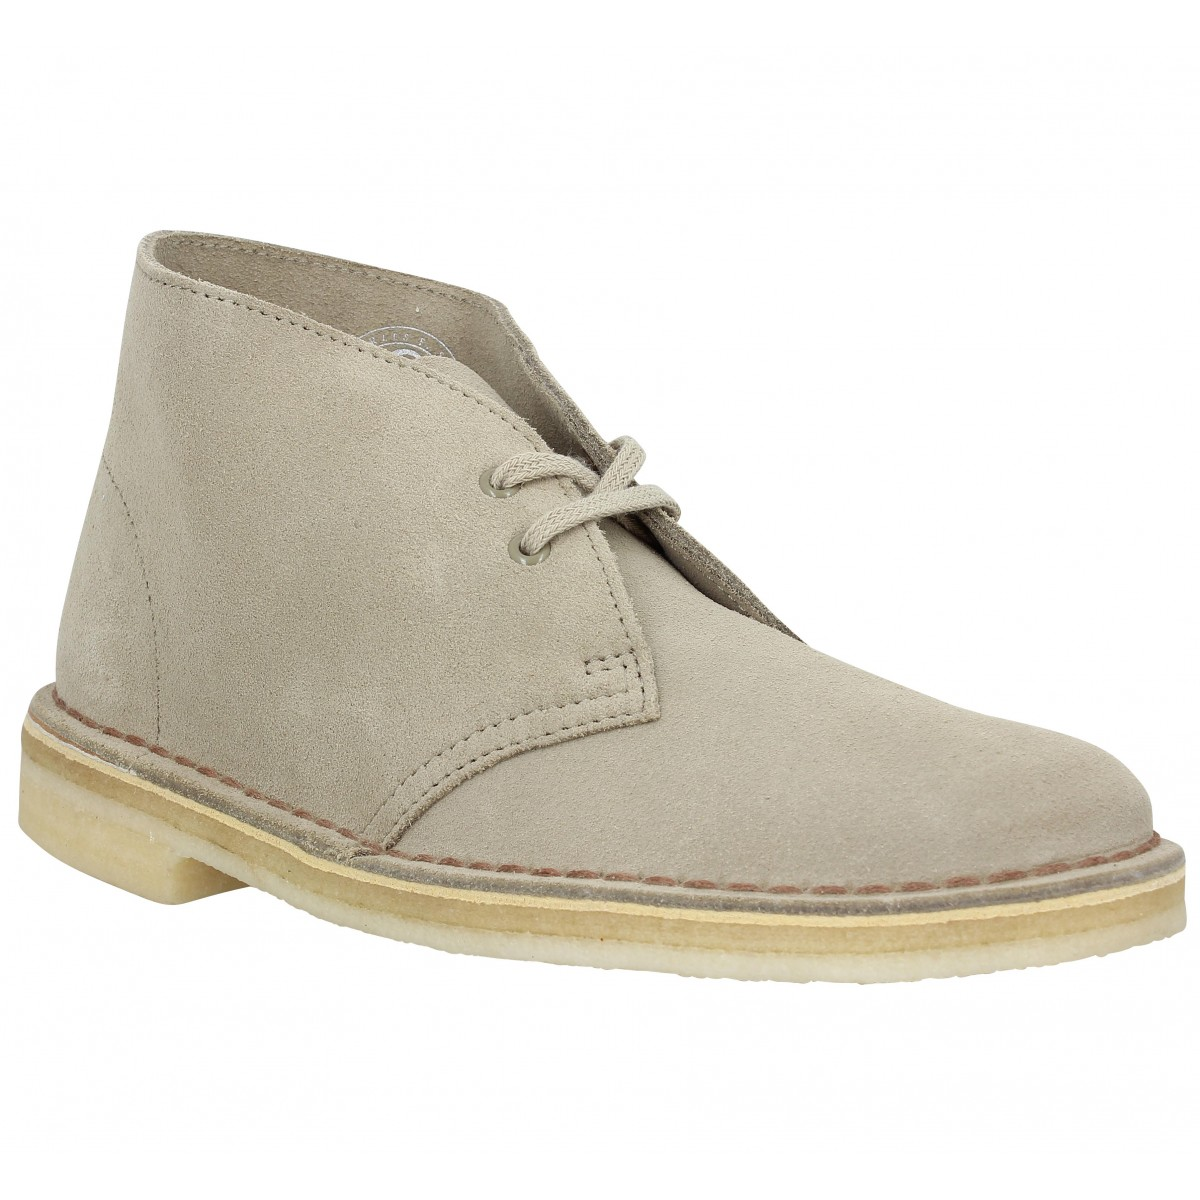 more photos available cheaper Clarks originals desert boot velours femme sand femme | Fanny ...